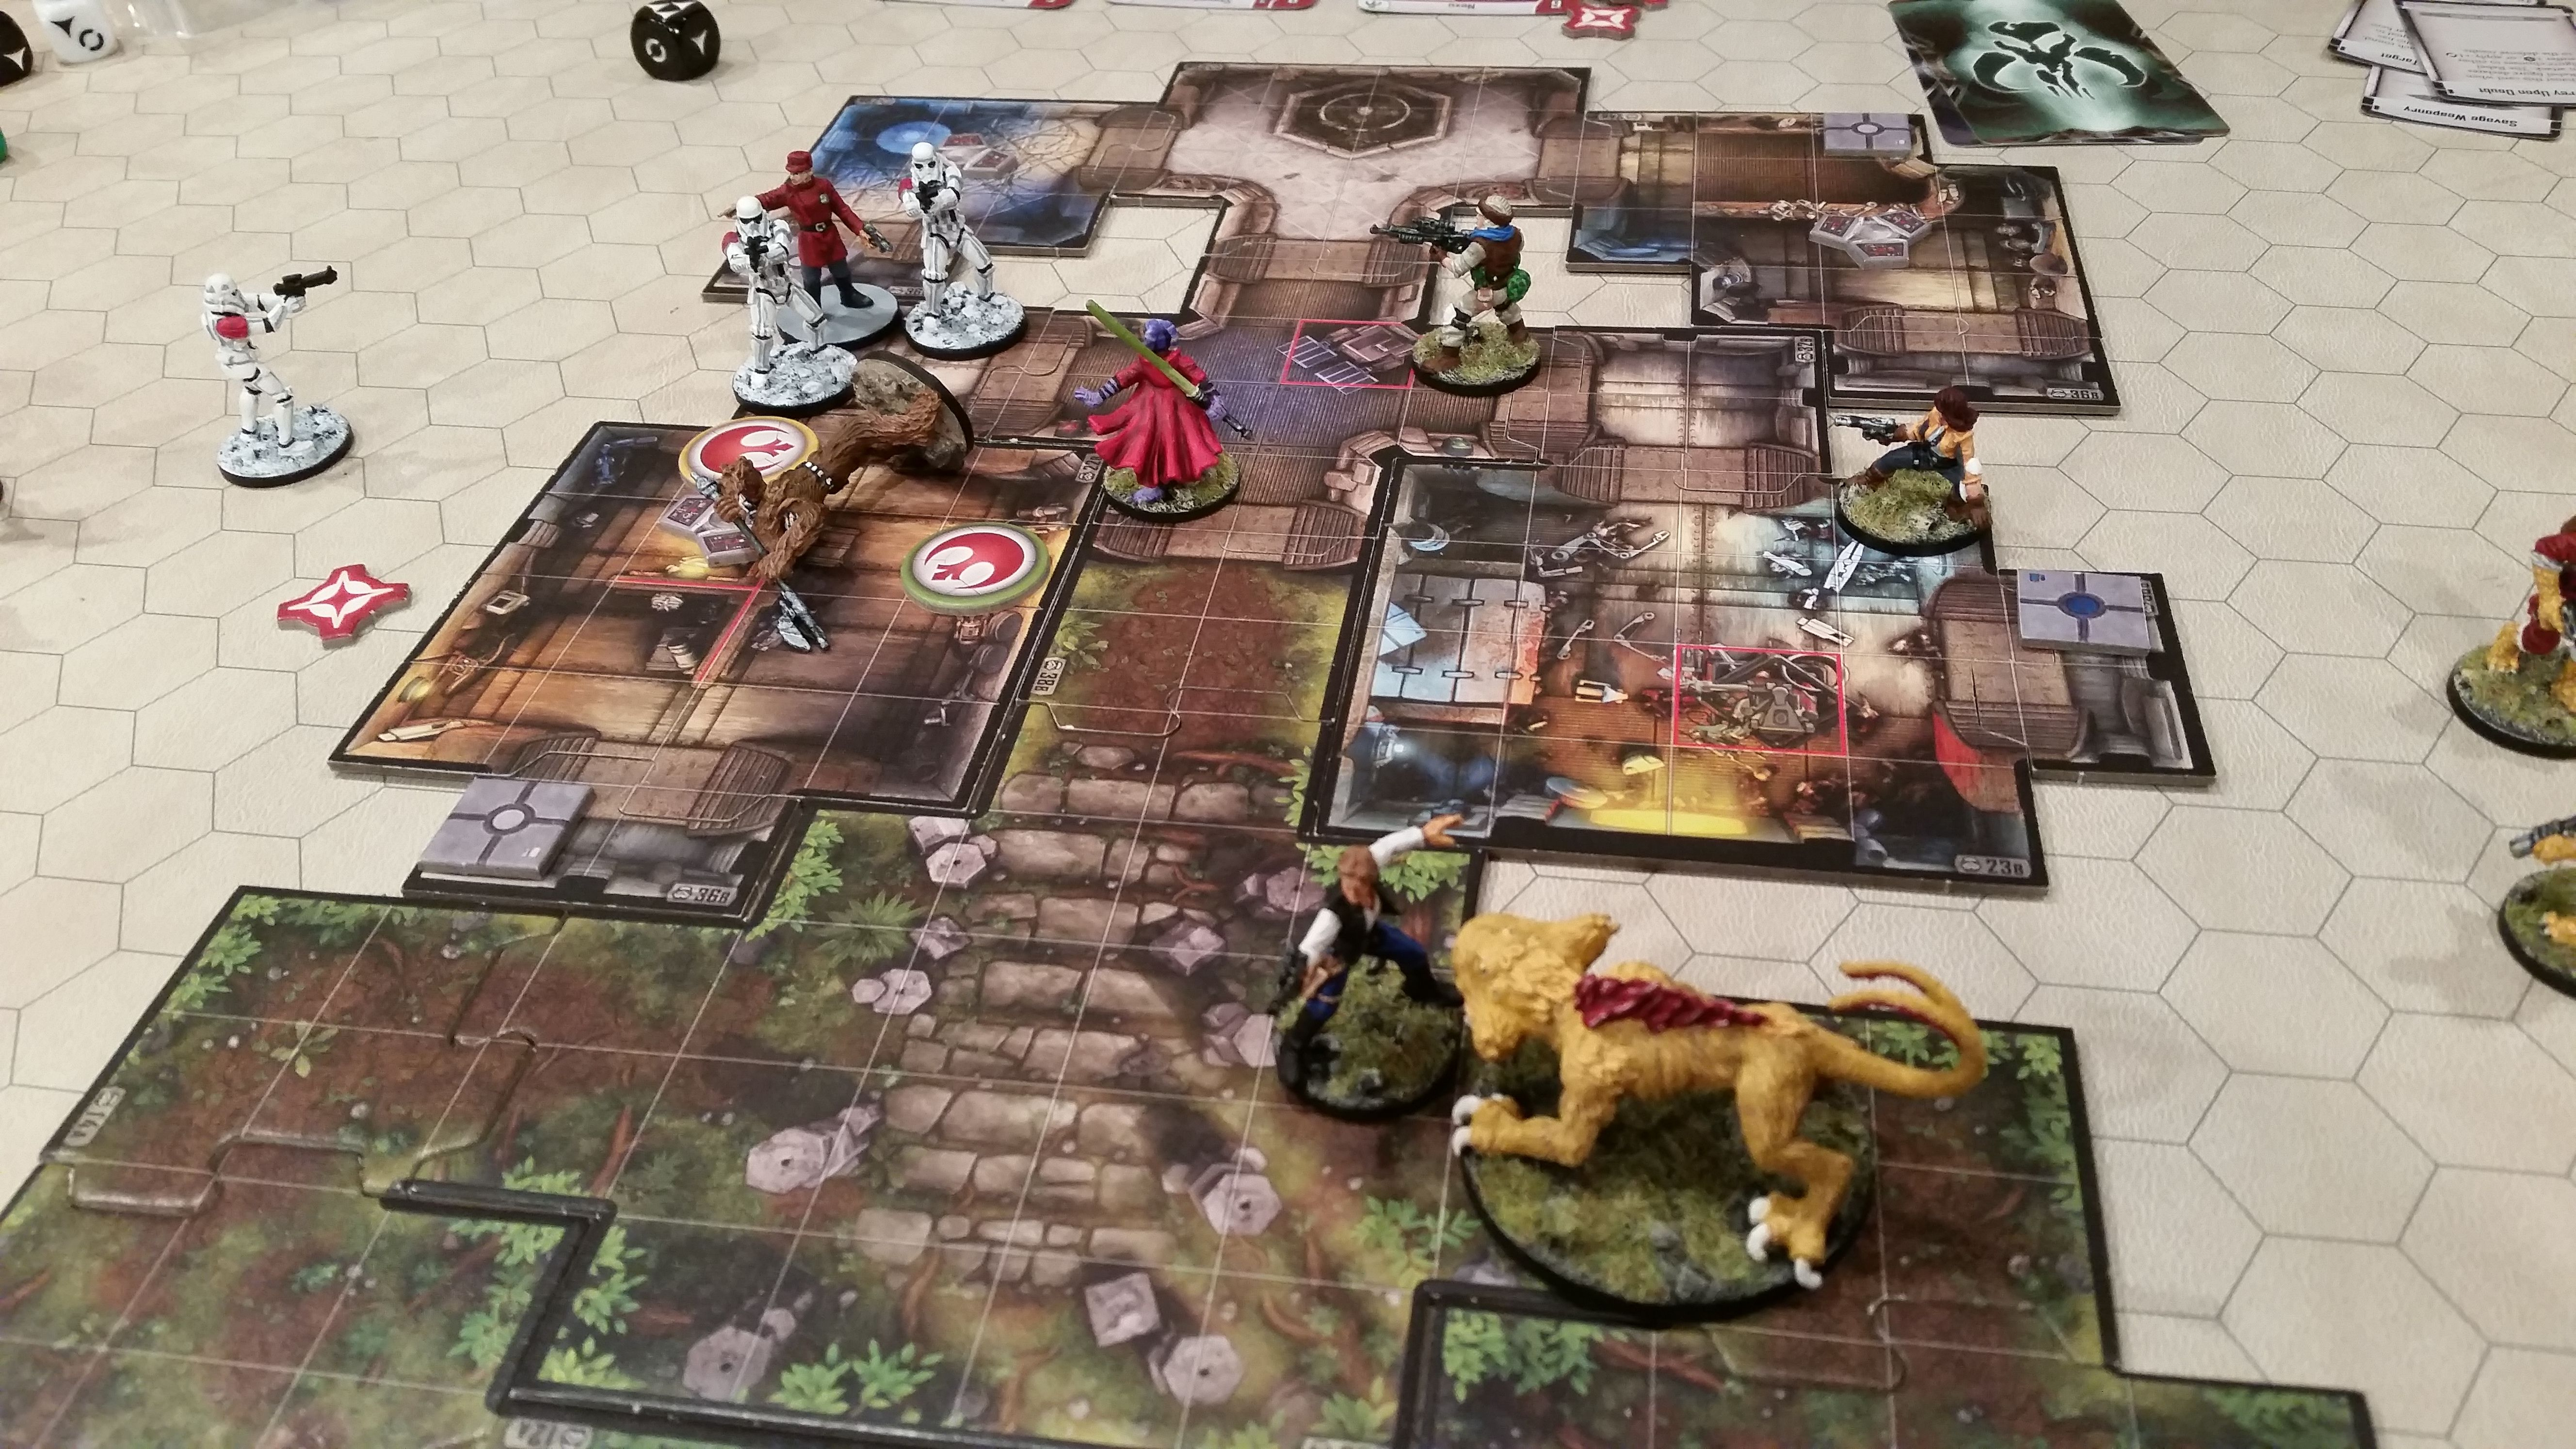 "#ImperialAssault ""In Coming"" Then the aerial bombardment started..."